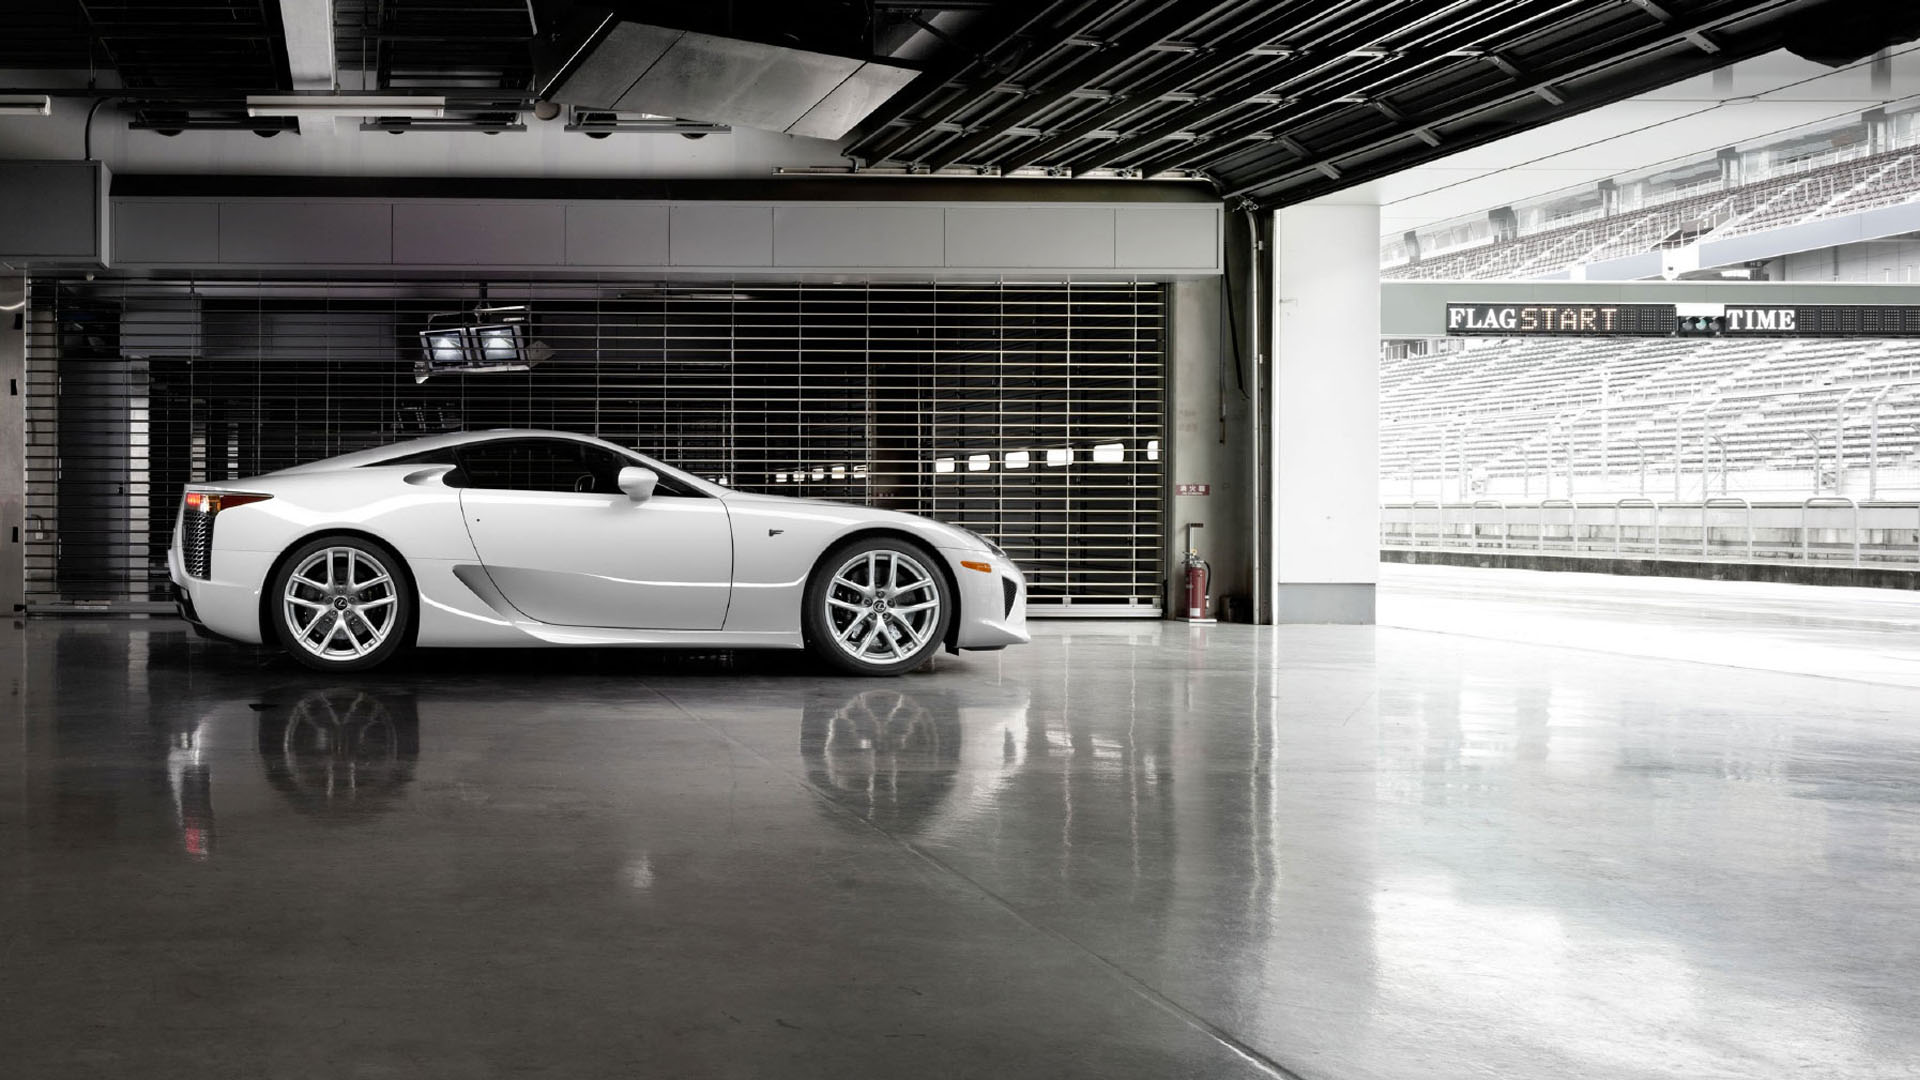 A Lexus LFA at a race track